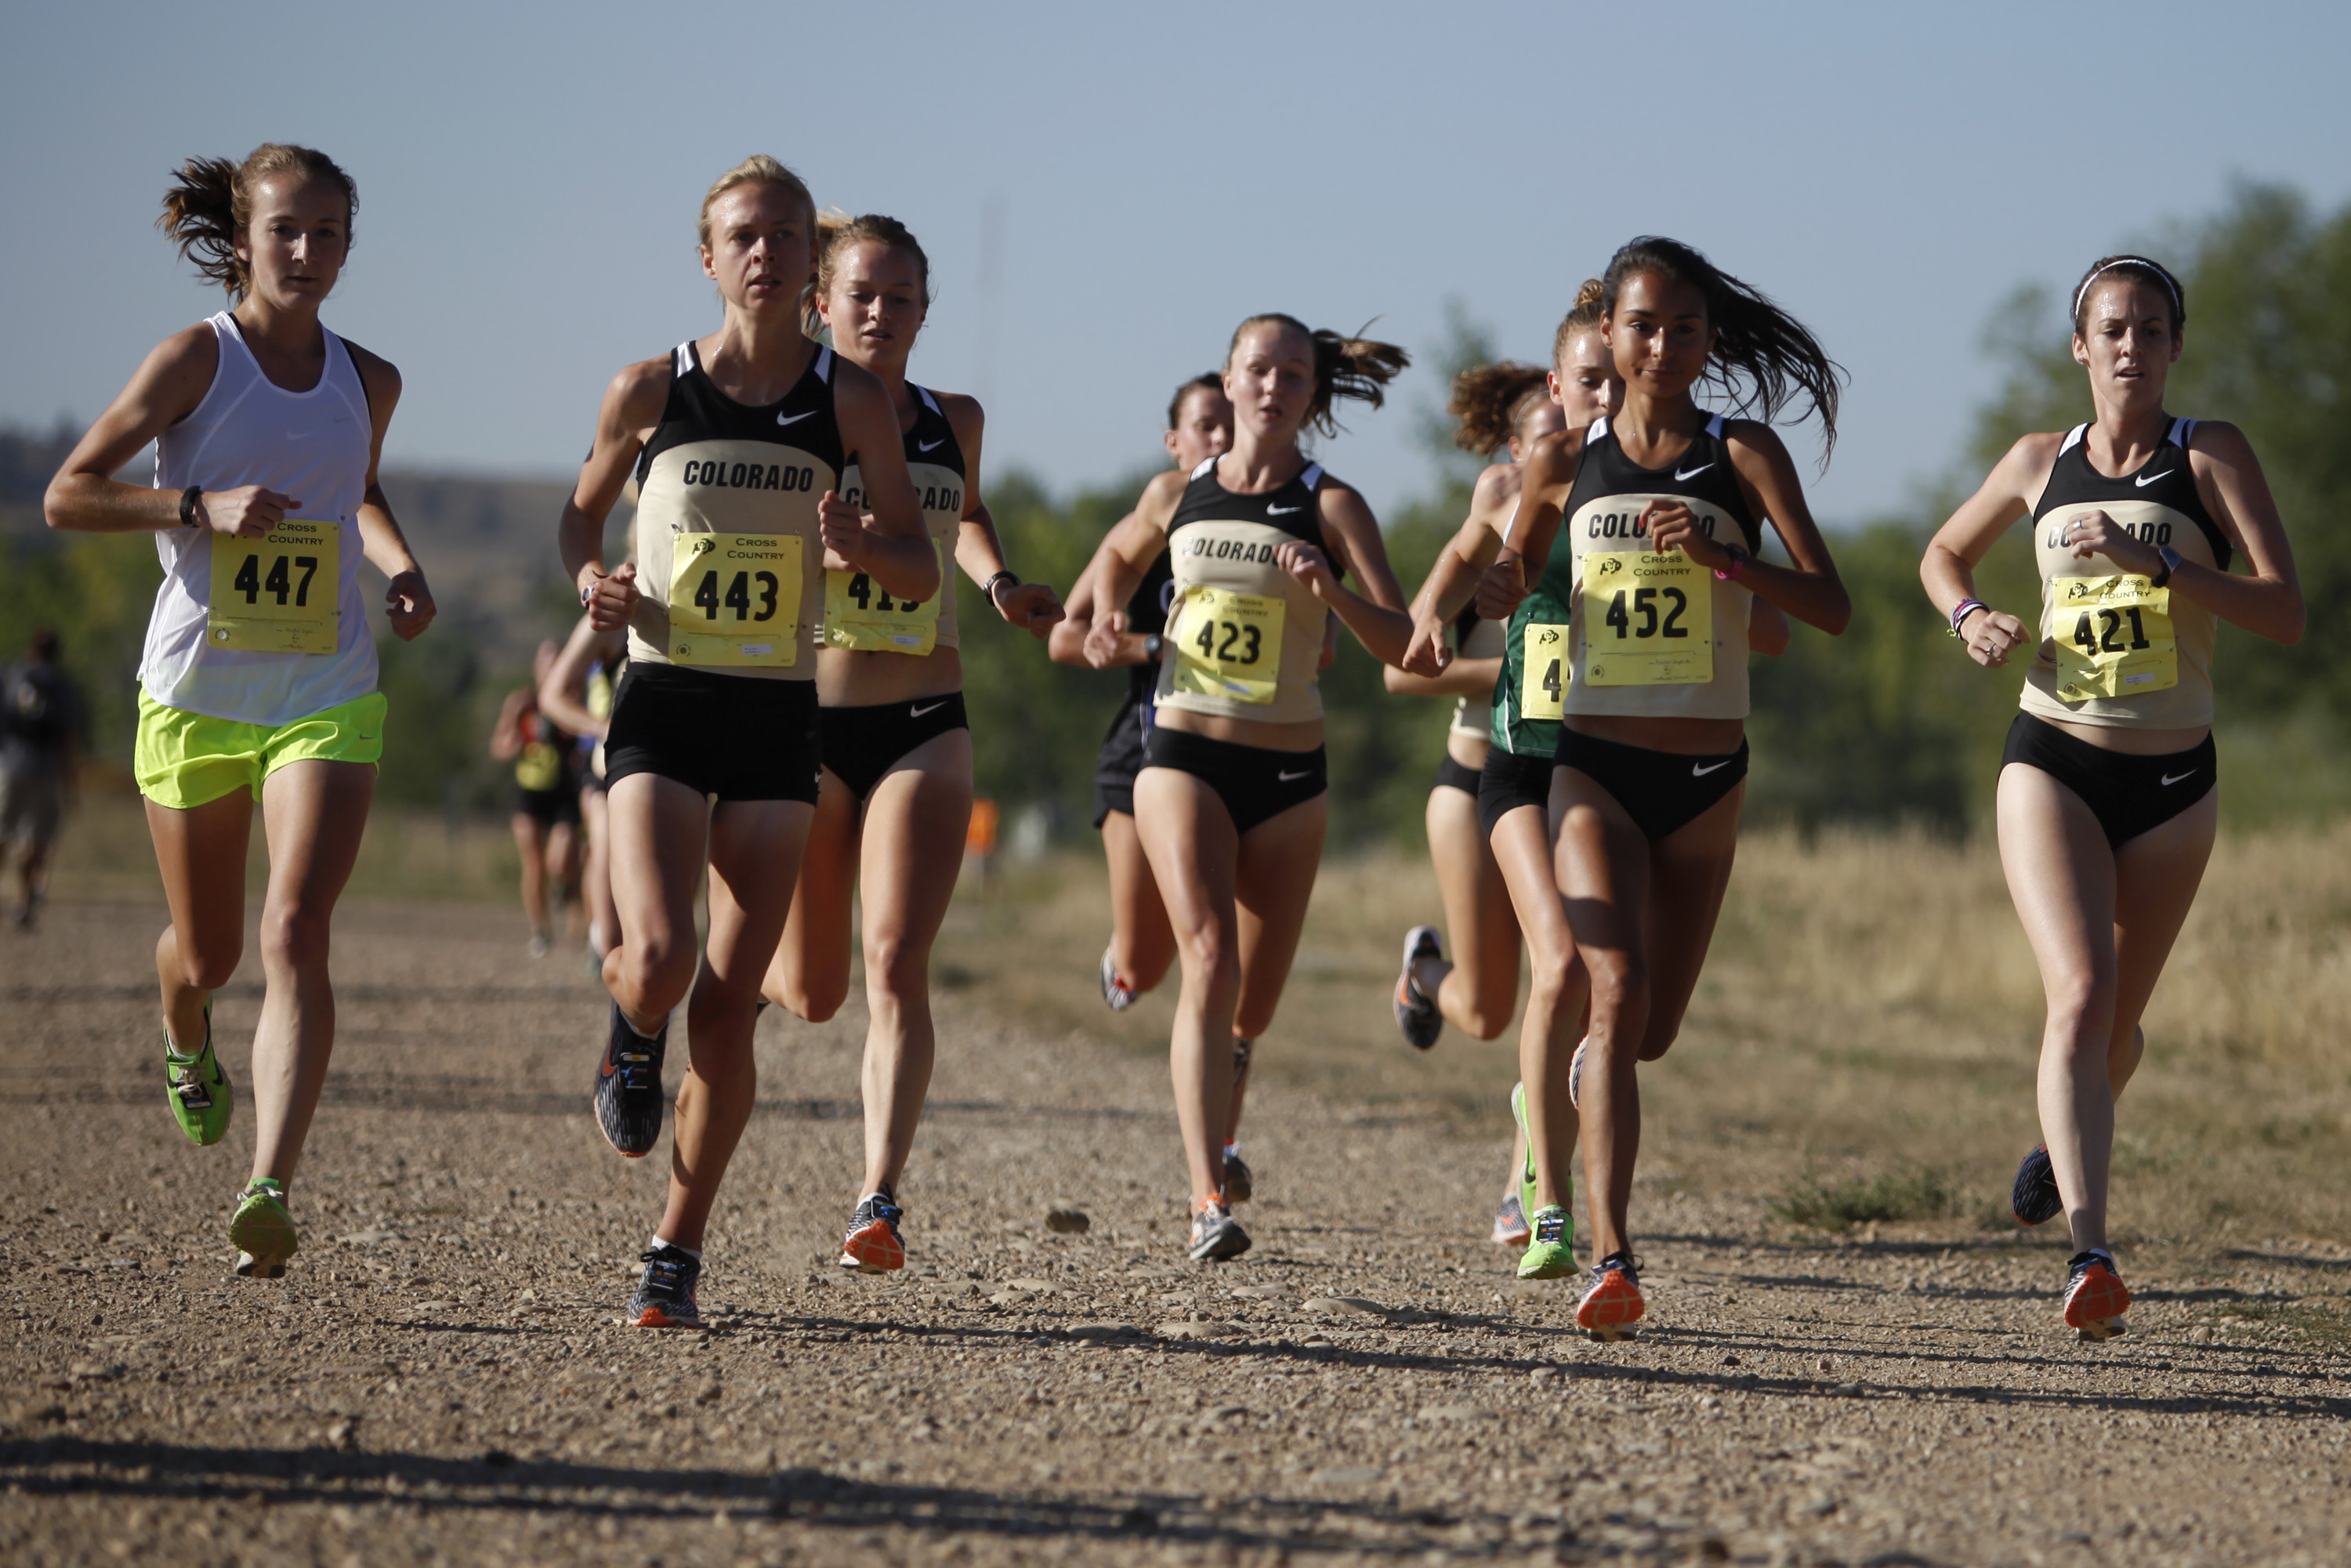 The lead group of women during the CU Cross Country Time Trials at CU Buffalo Ranch earlier this year. Last year, both CU men's and women's cross country teams won the Pac-12 Championship. (Robert R. Denton/CU Independent File)